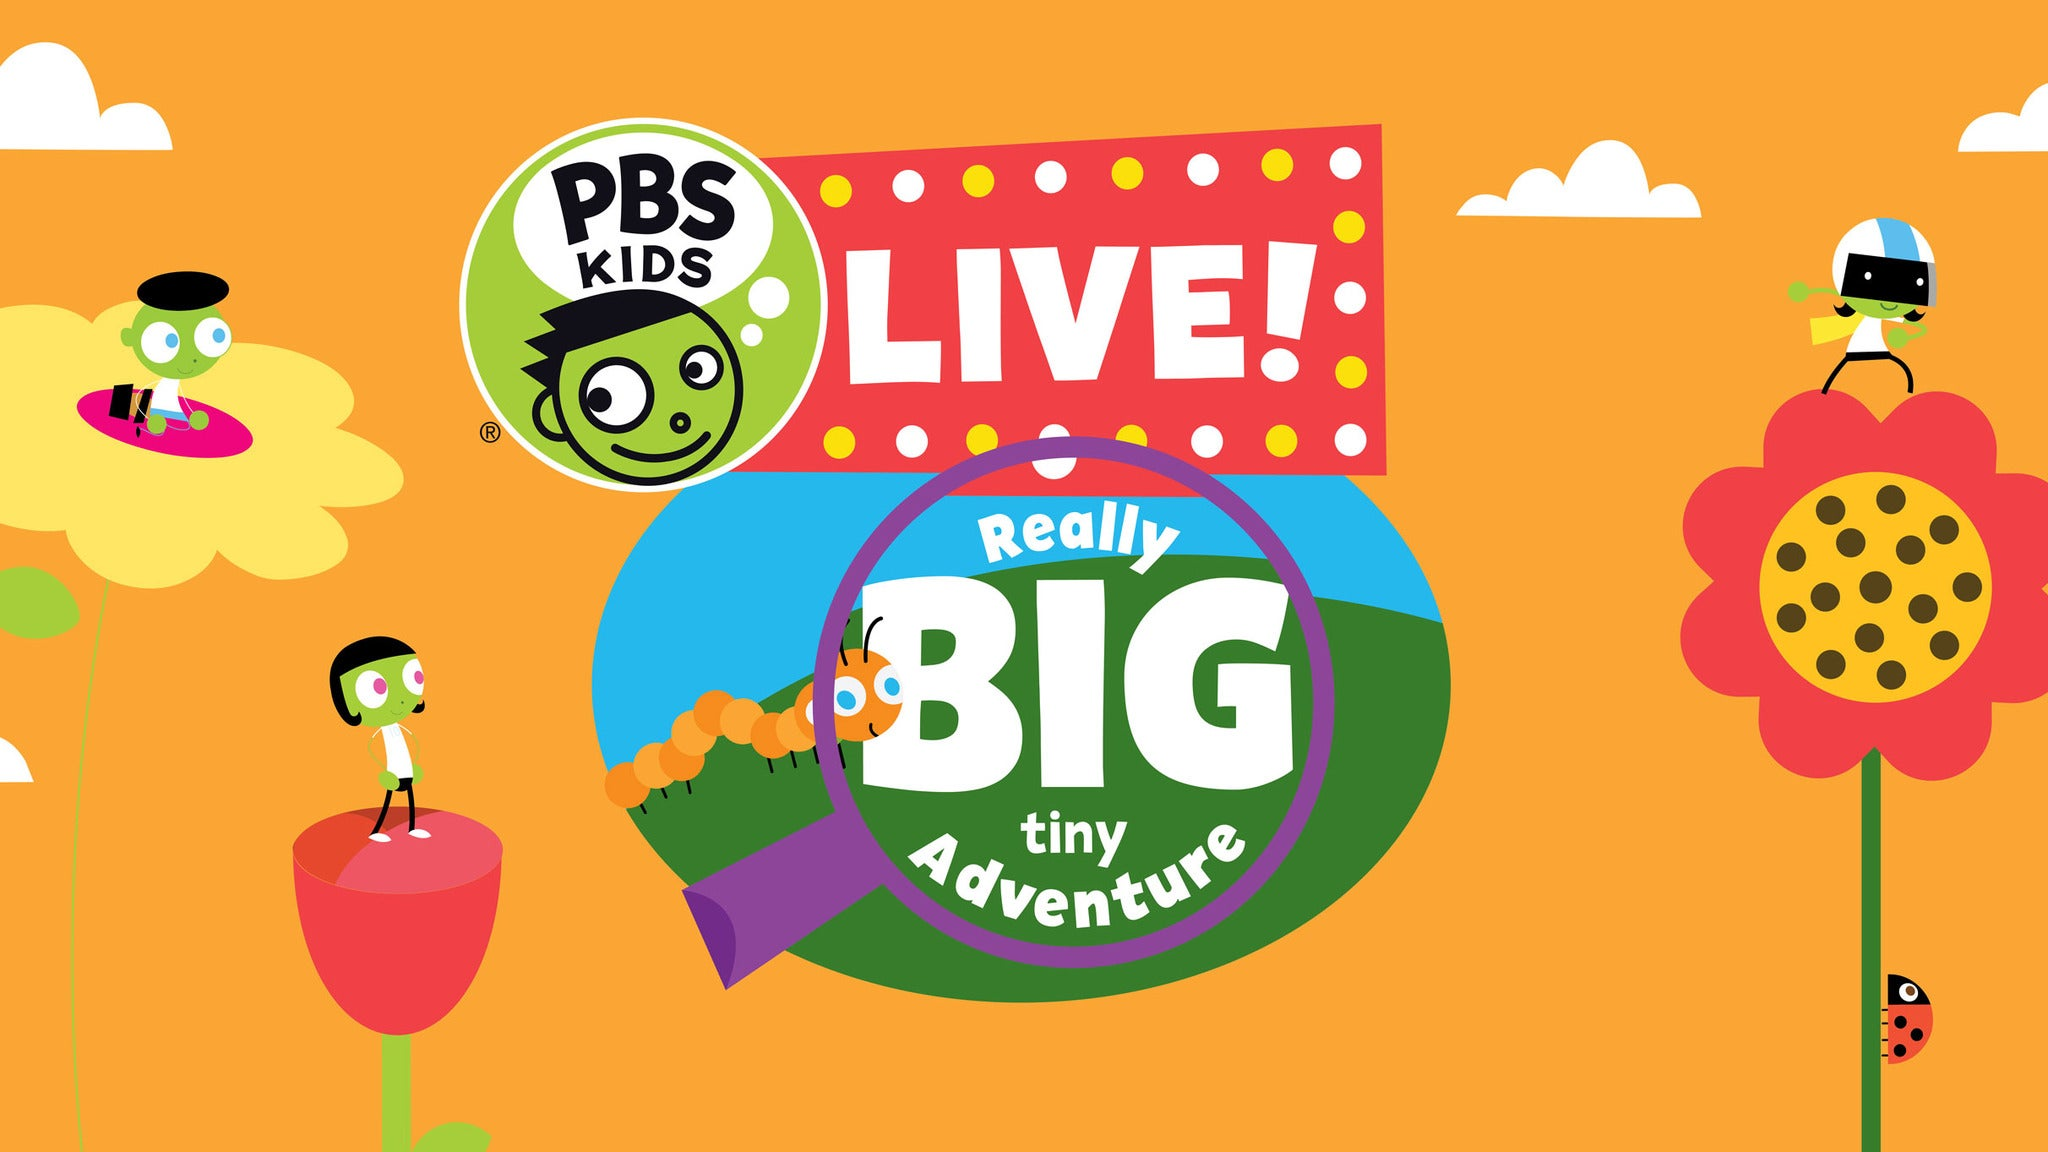 PBS KIDS LIVE! Really BIG tiny Adventure at City Hall Live